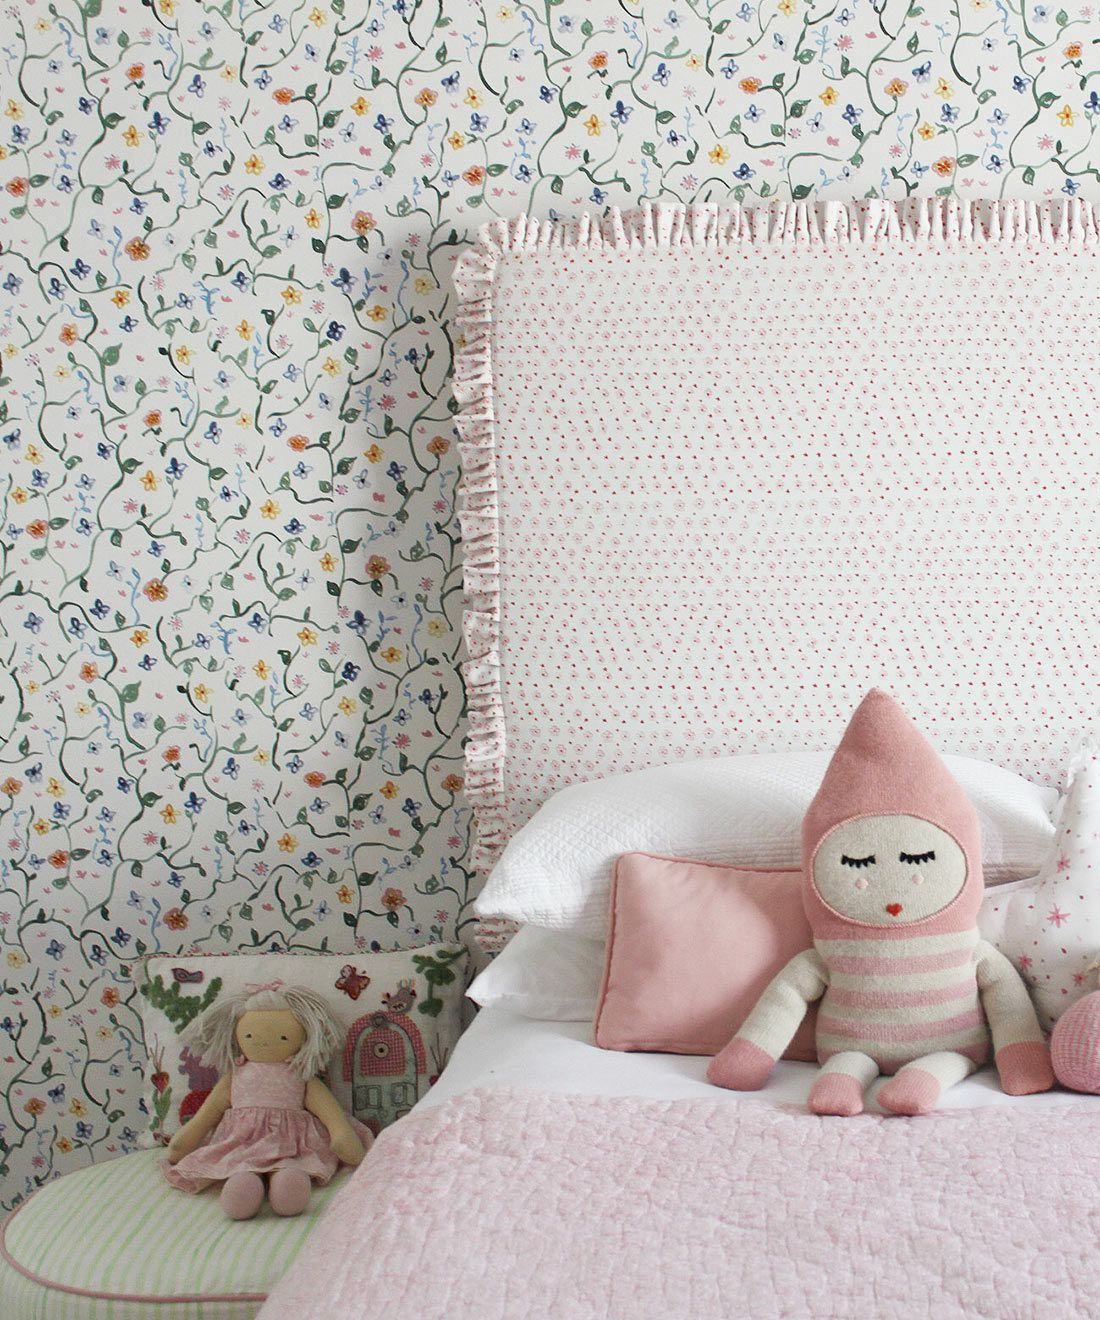 Wild Garden • Dainty Floral Wallpaper • Milton & King Europe • Georgia MacMillan • Childrens Wallpaper • Nursery Wallpaper • Bed with pink headboard and pink duvet